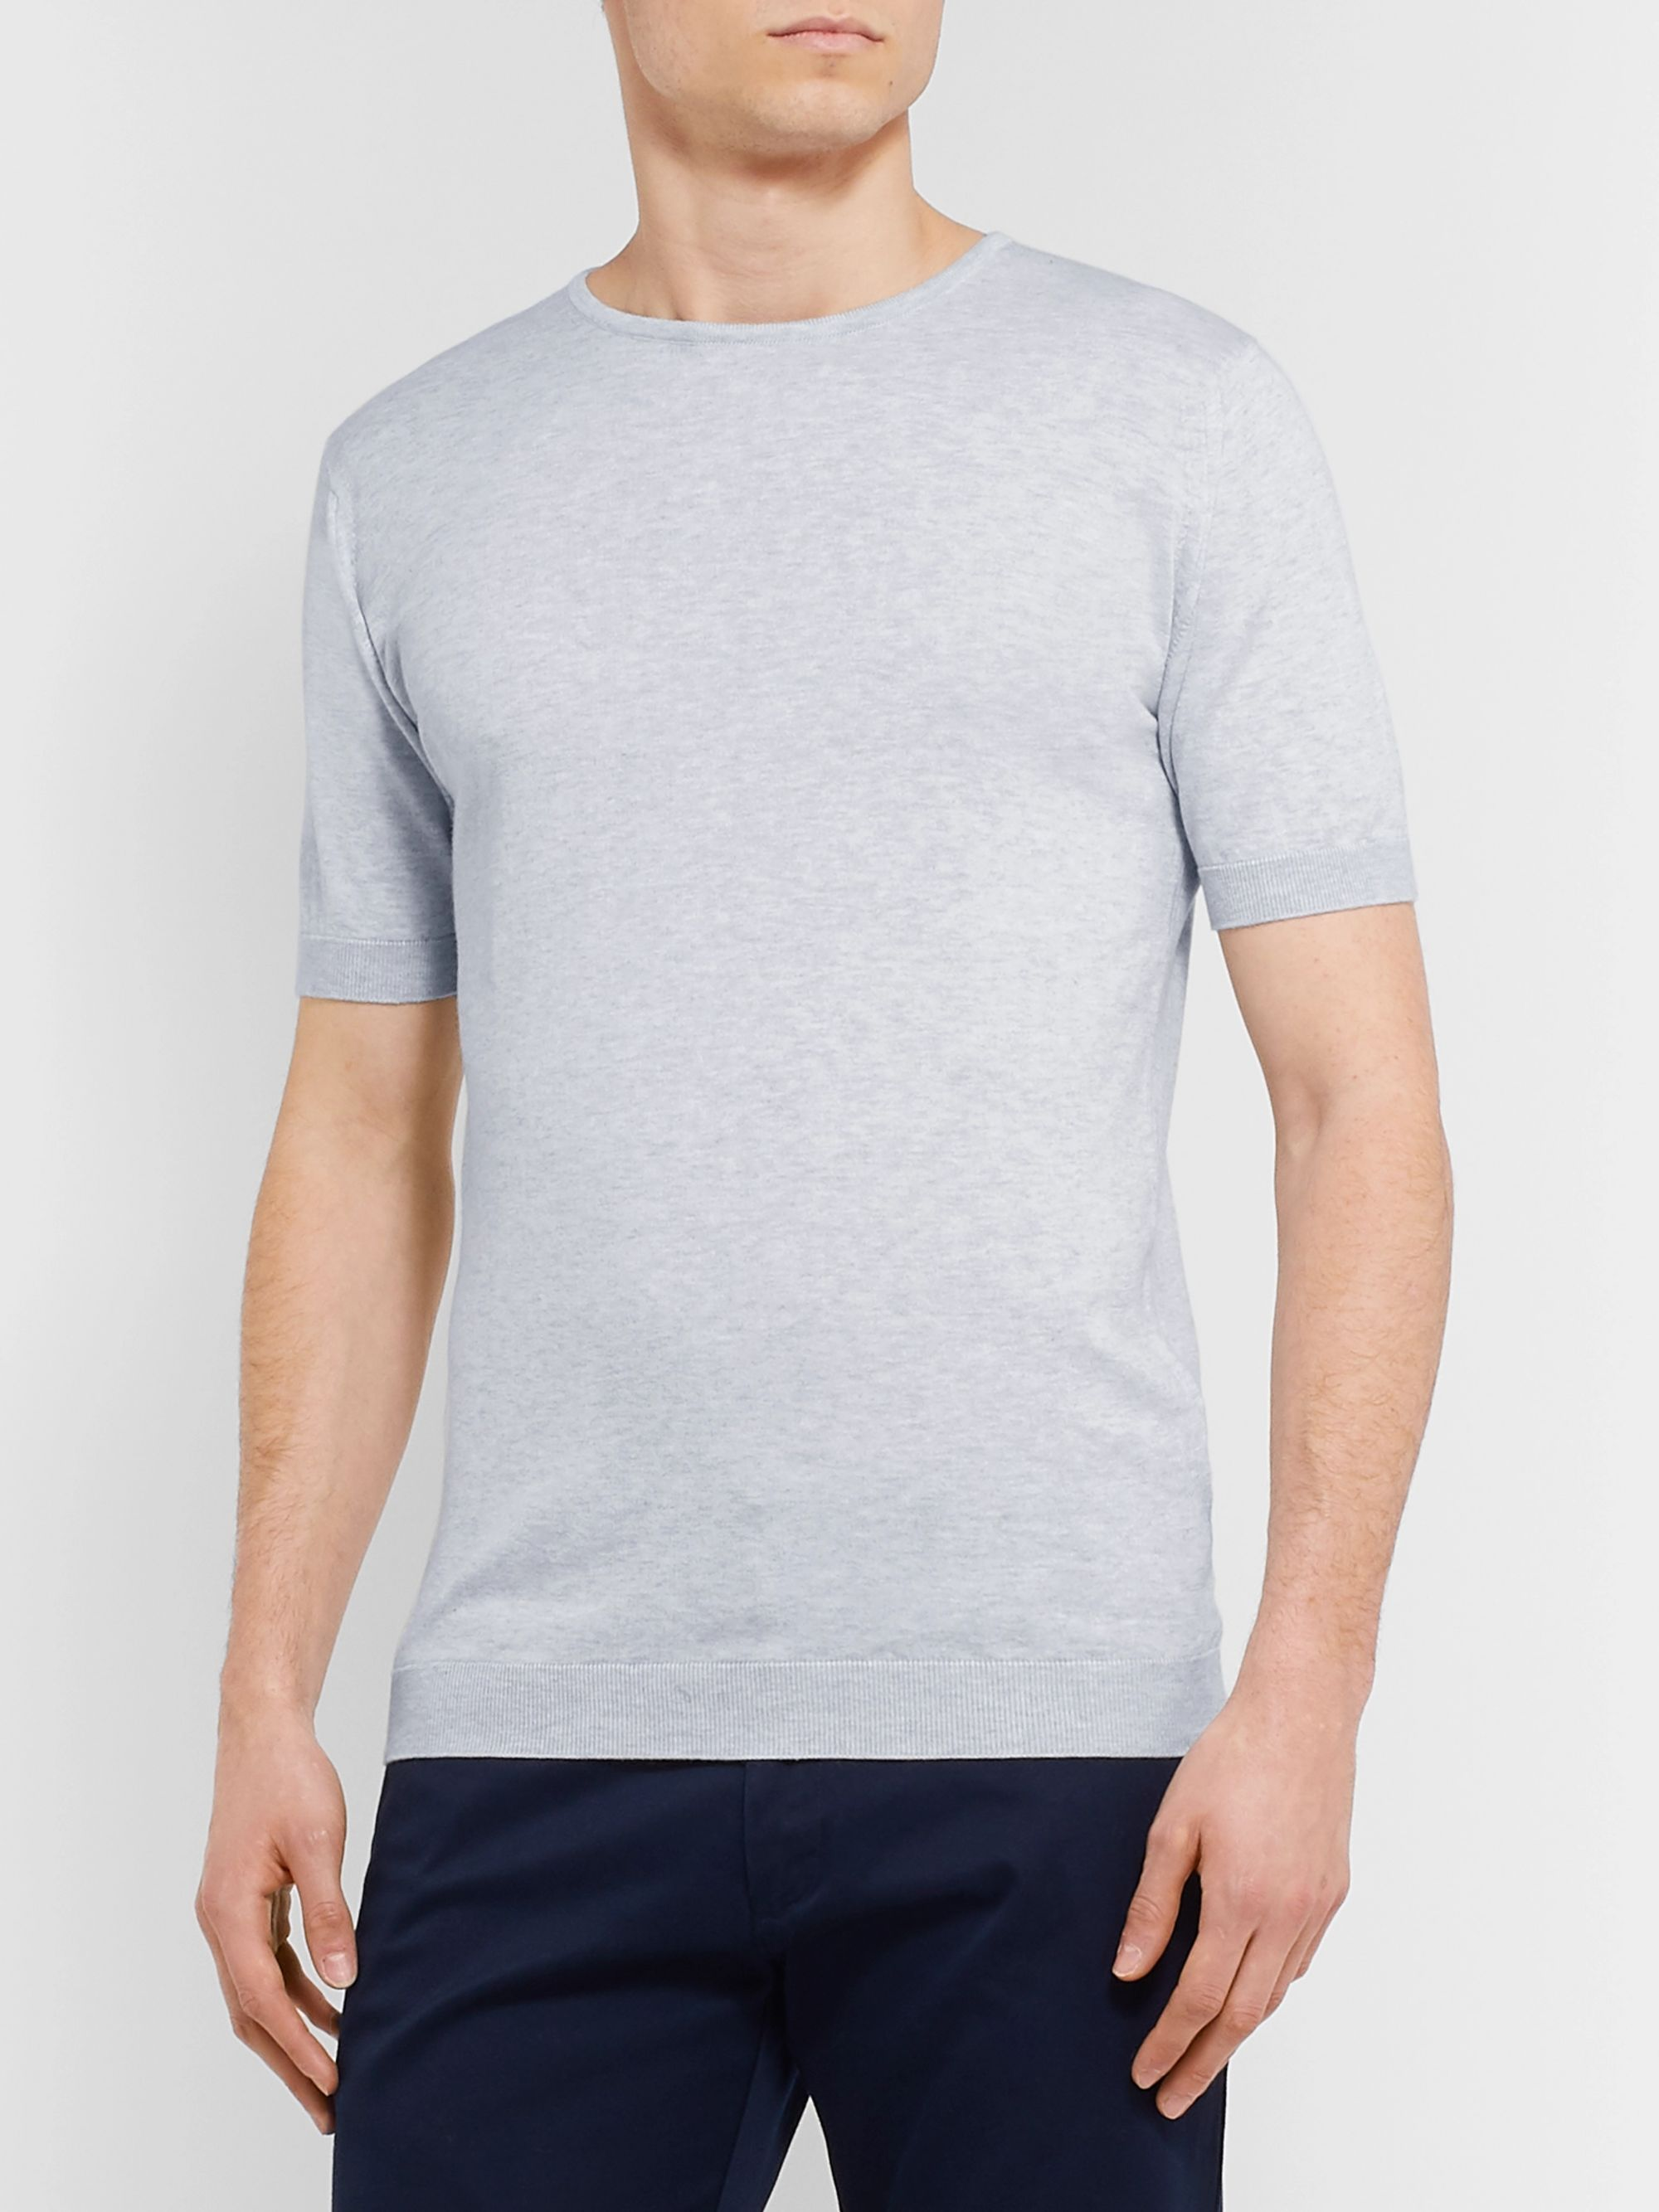 John Smedley Slim-Fit Mélange Sea Island Cotton T-Shirt